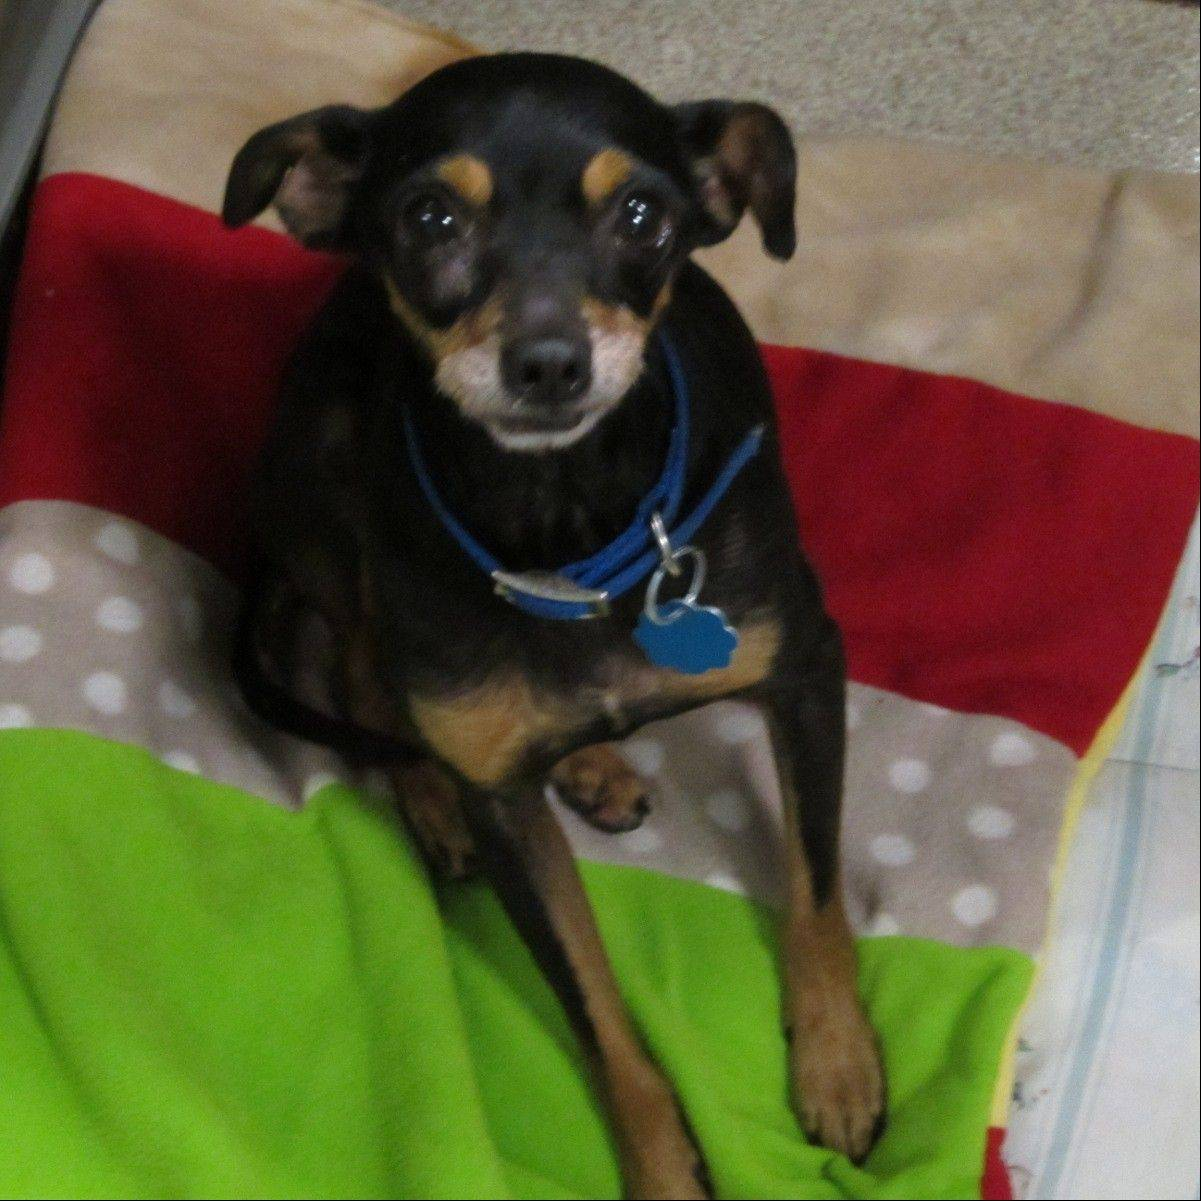 Archie, a male miniature Pinscher mix, is about 10 years old and weighs around 13 pounds.